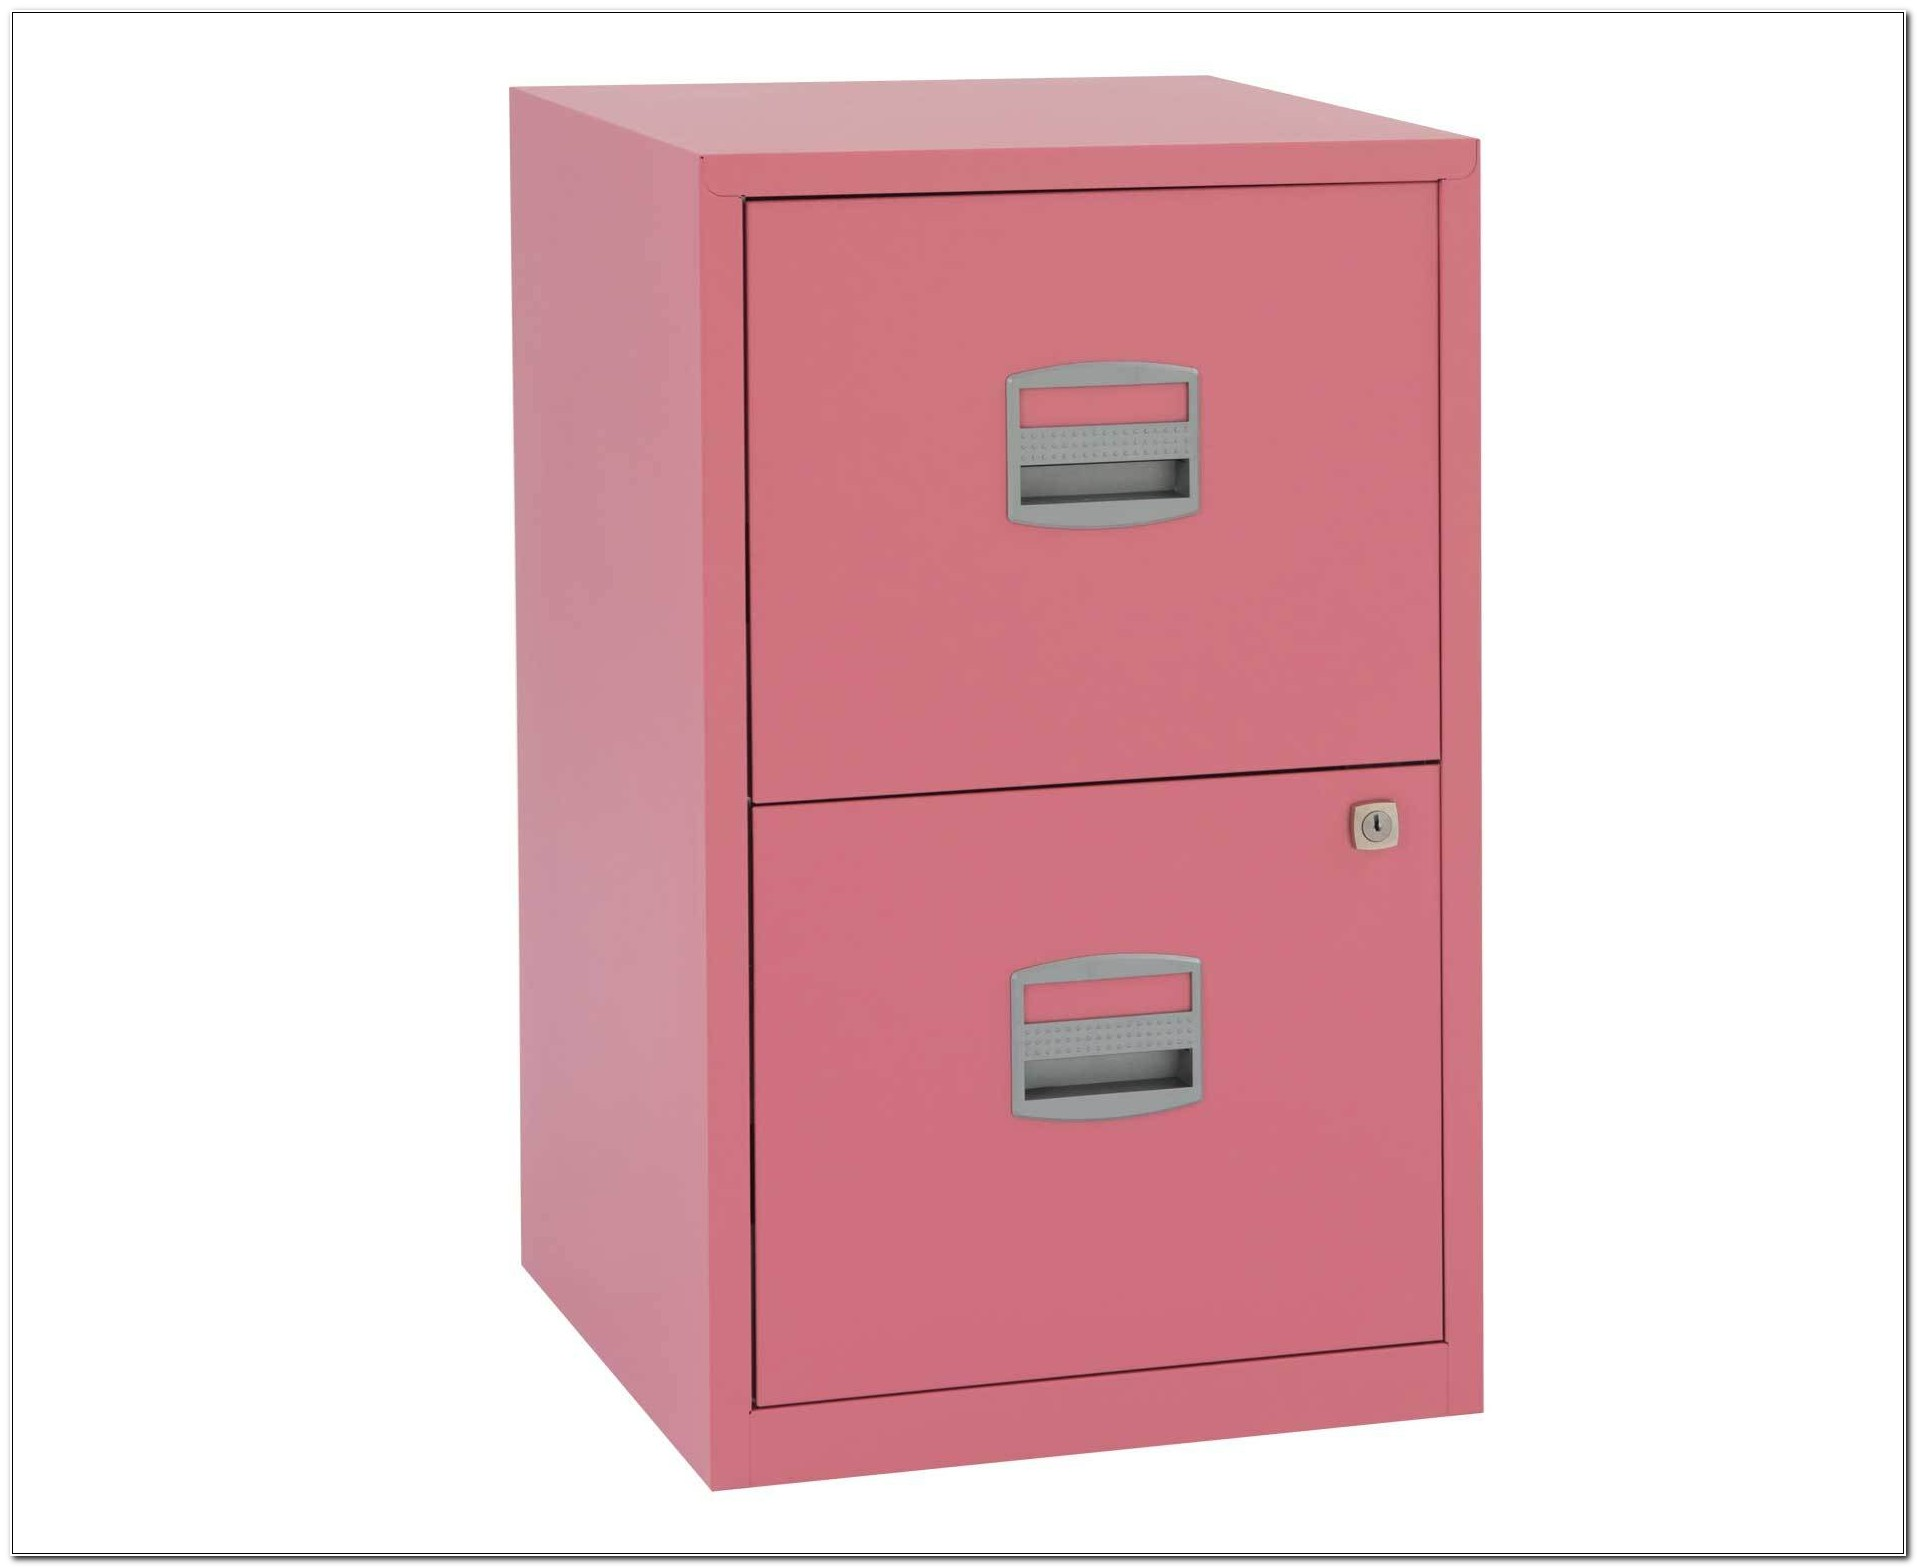 2 Drawer Metal Lockable Filing Cabinet